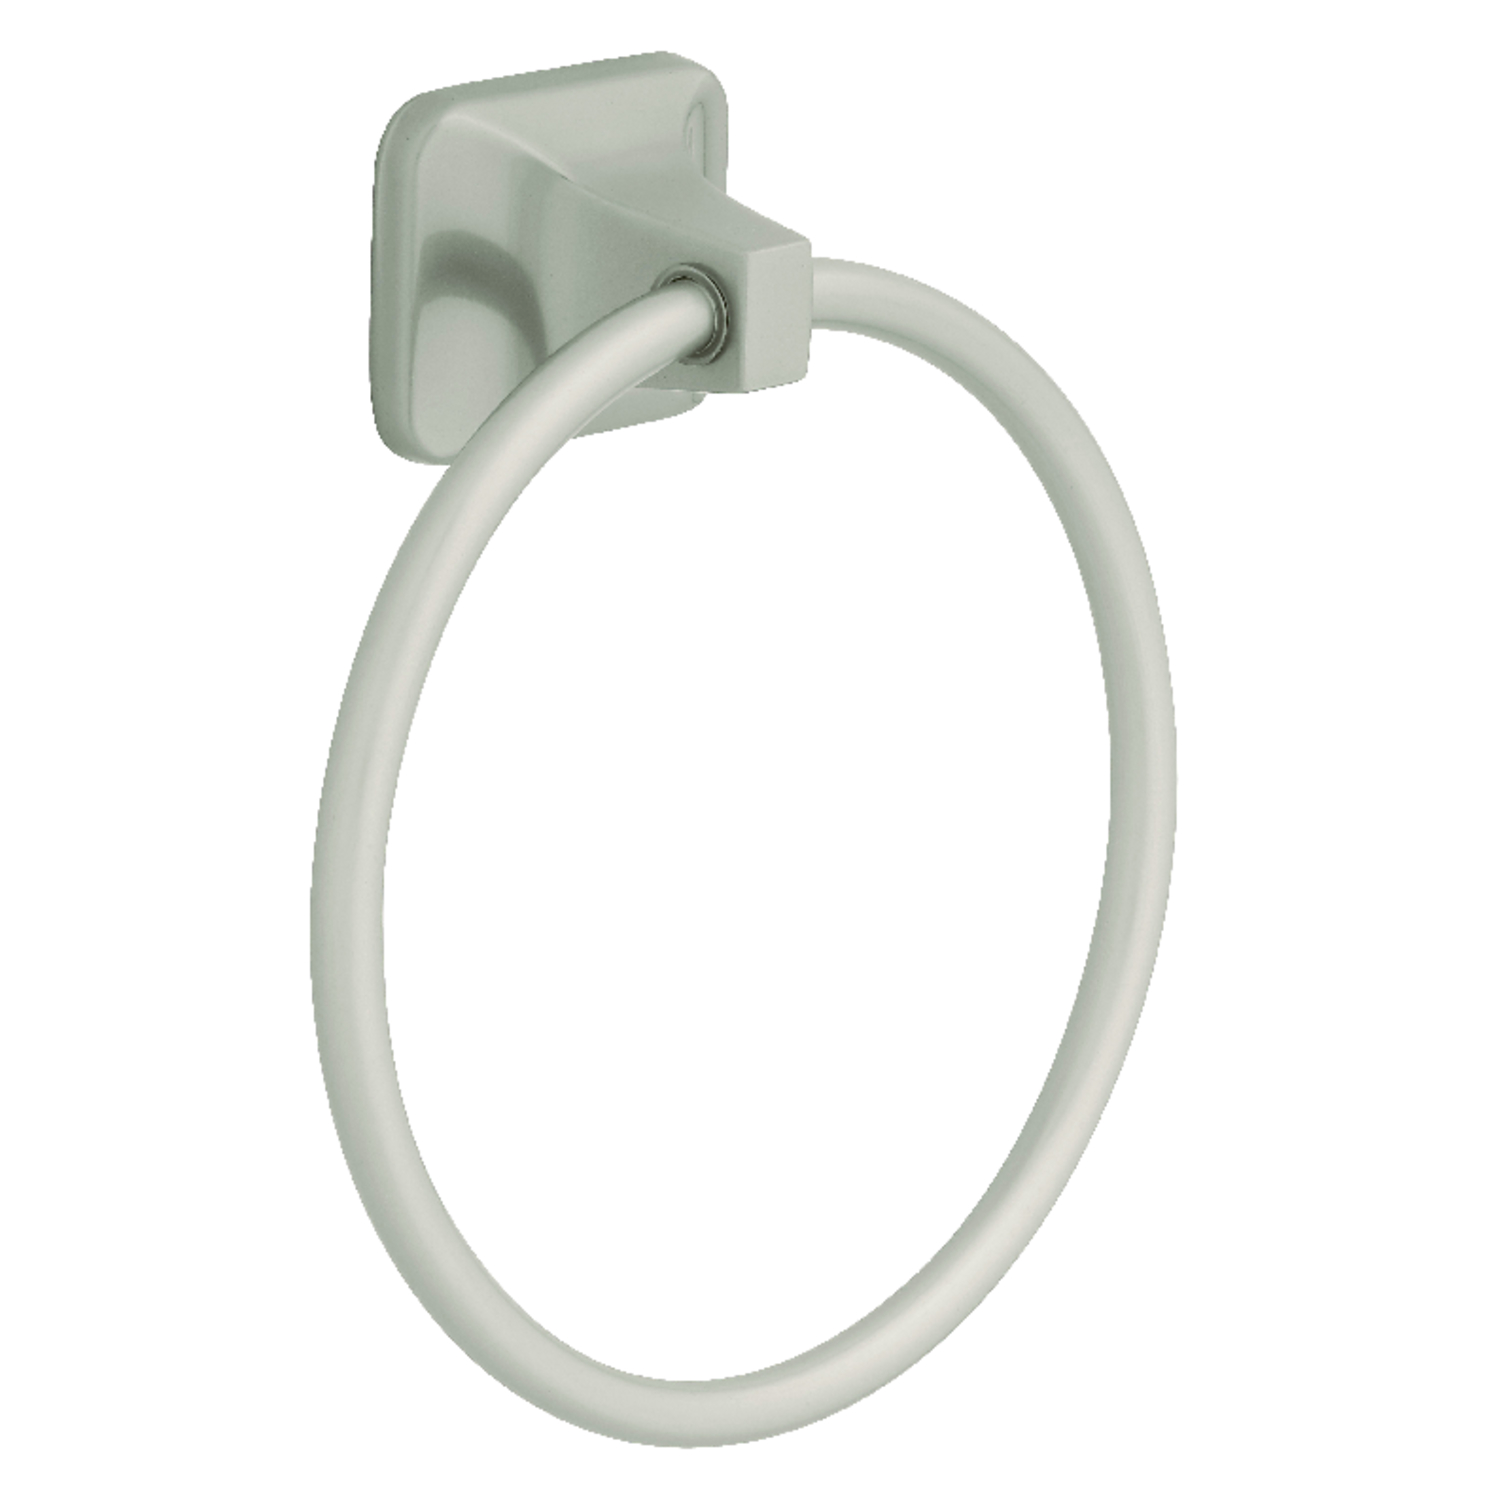 Franklin Brass  Futura  Satin Nickel  Towel Ring  Die Cast Zinc